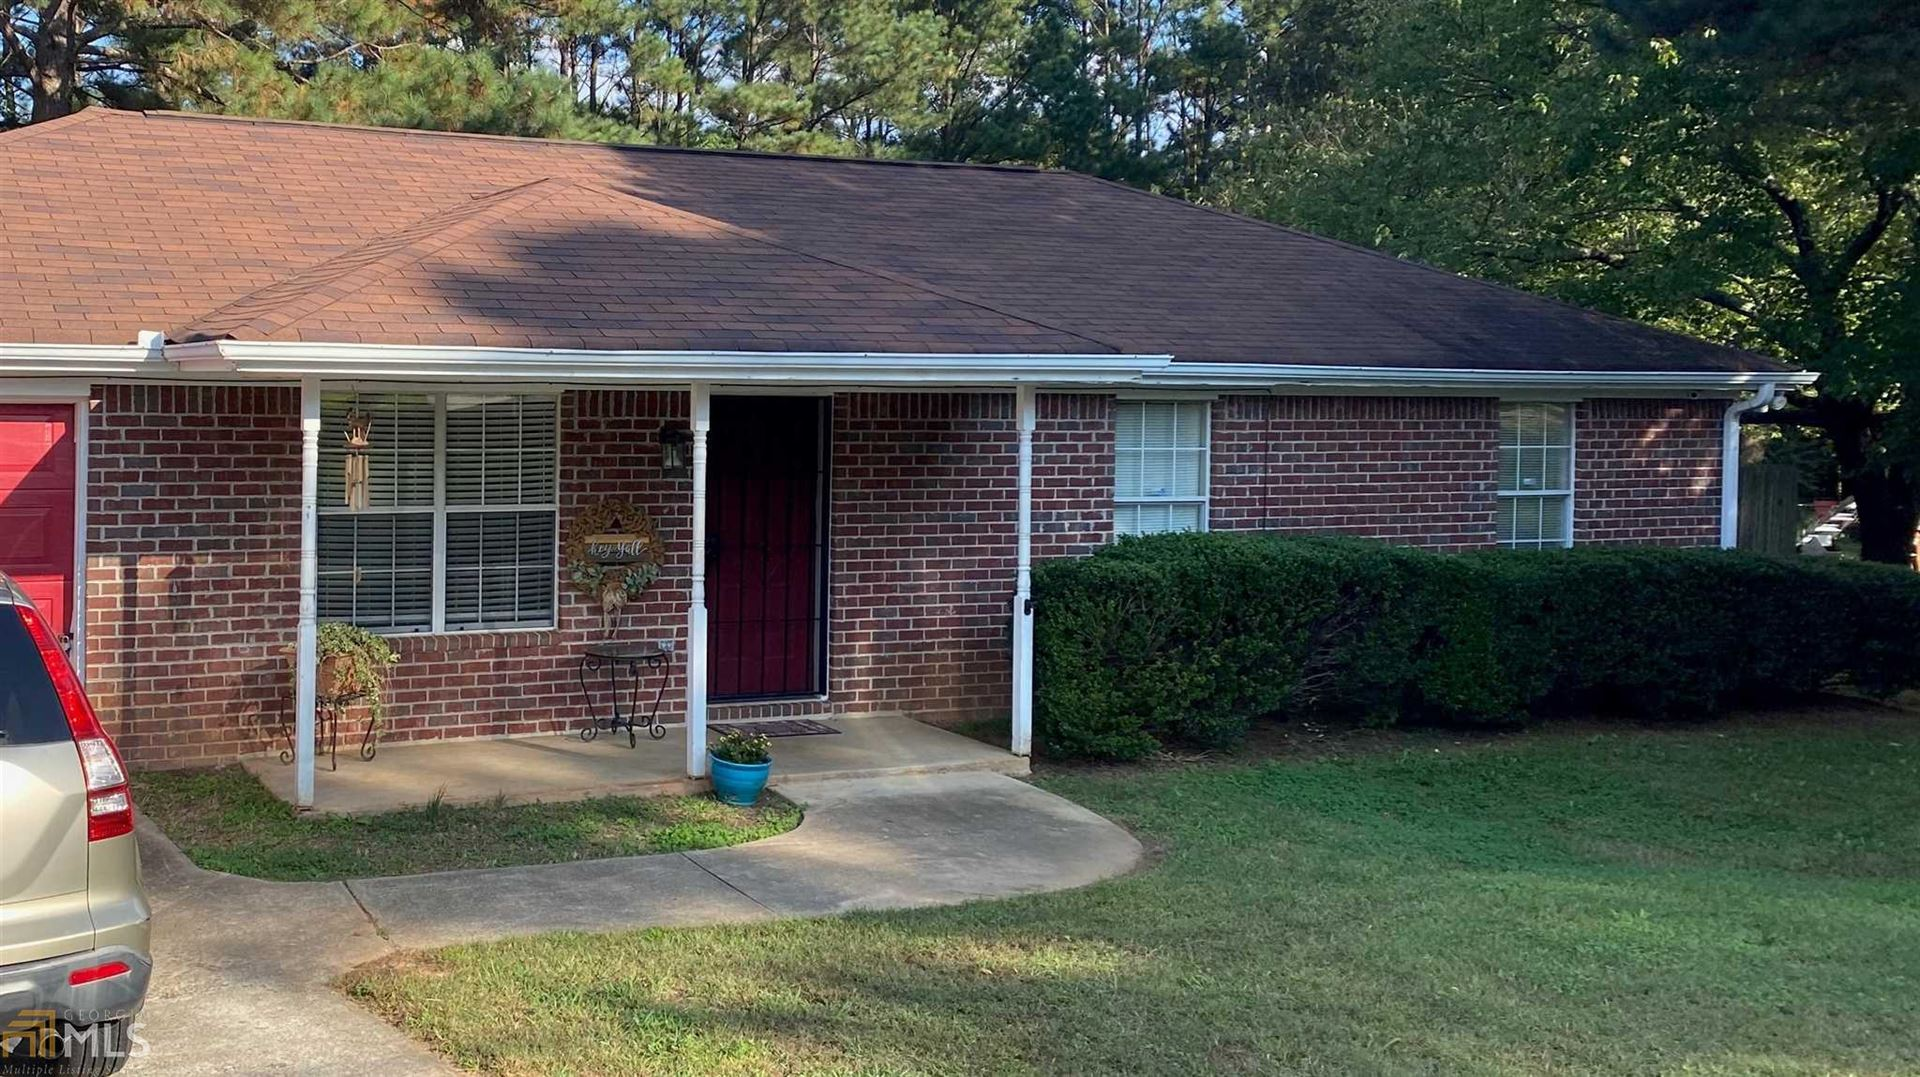 930 Steele Dr, Hampton, GA 30228 - MLS#: 8881382